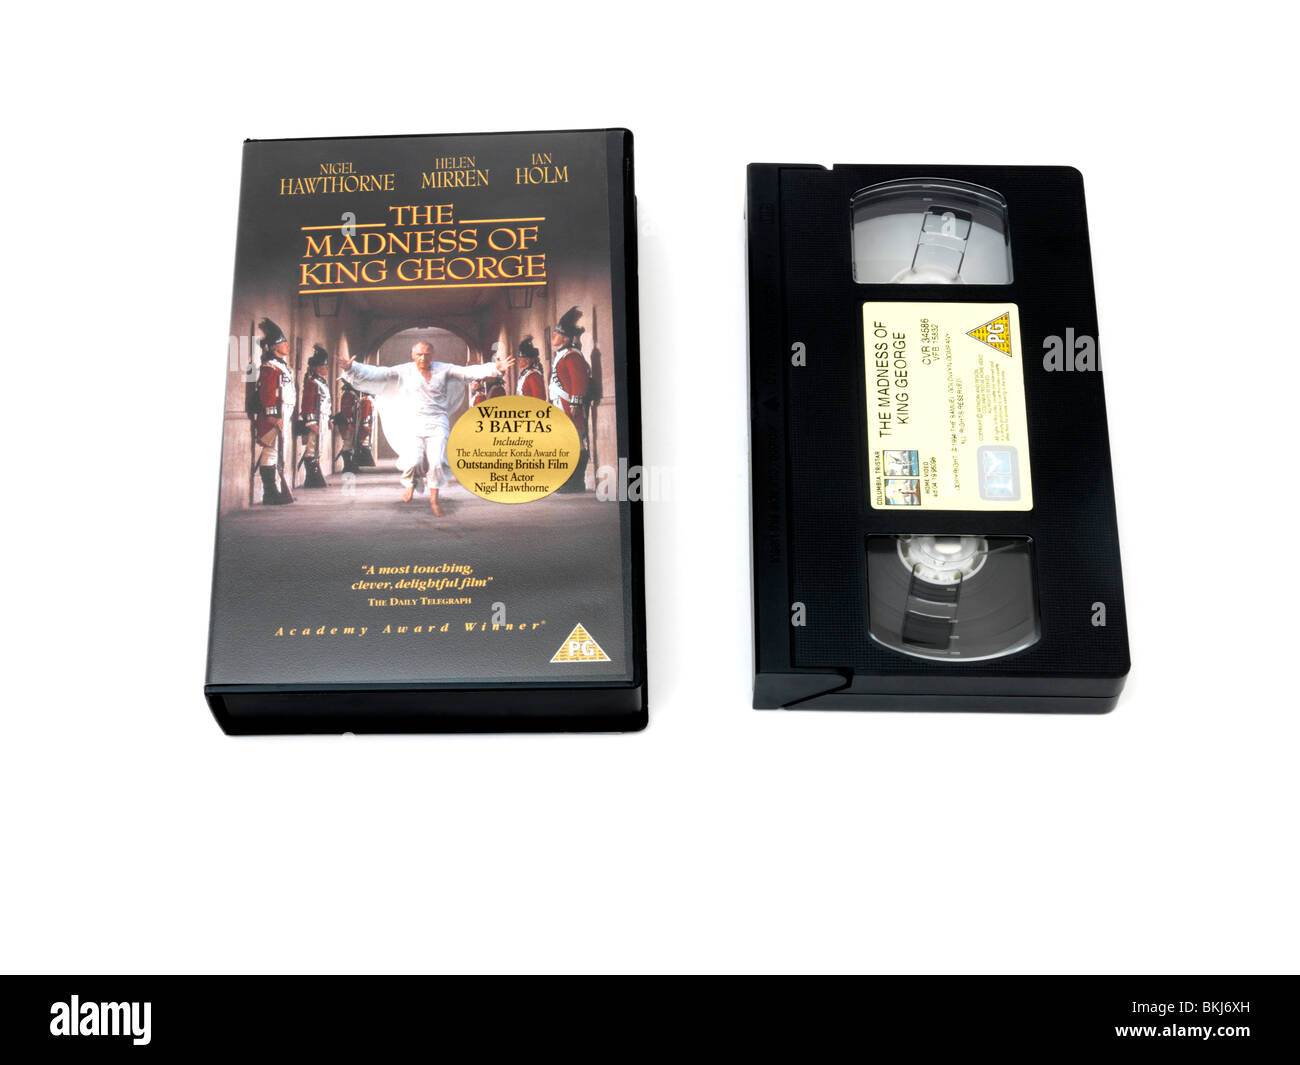 Video Cassette And Plastic Case Of The Madness Of King George - Stock Image